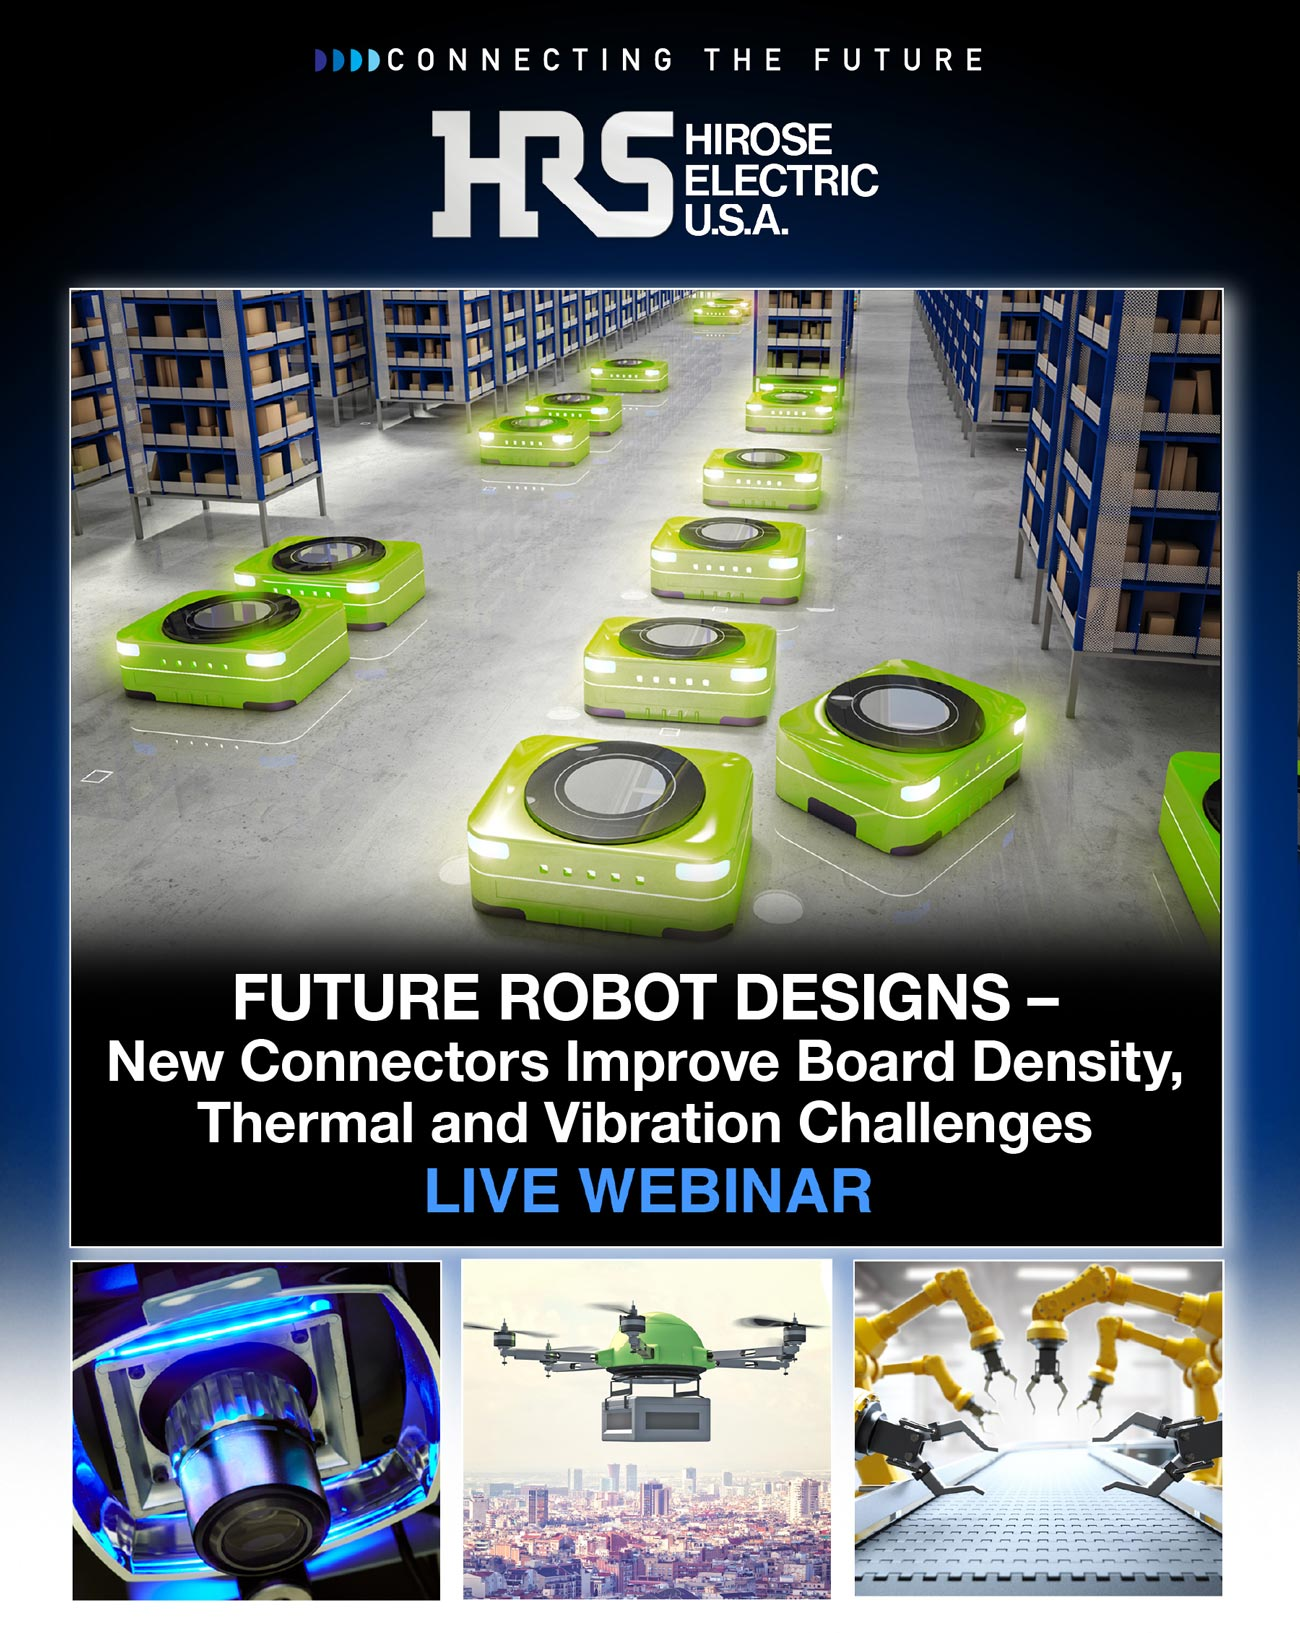 - FUTURE ROBOT DESIGNS - New Connectors Improve Board Density, Thermal and Vibration Challenges LIVE WEBINAR